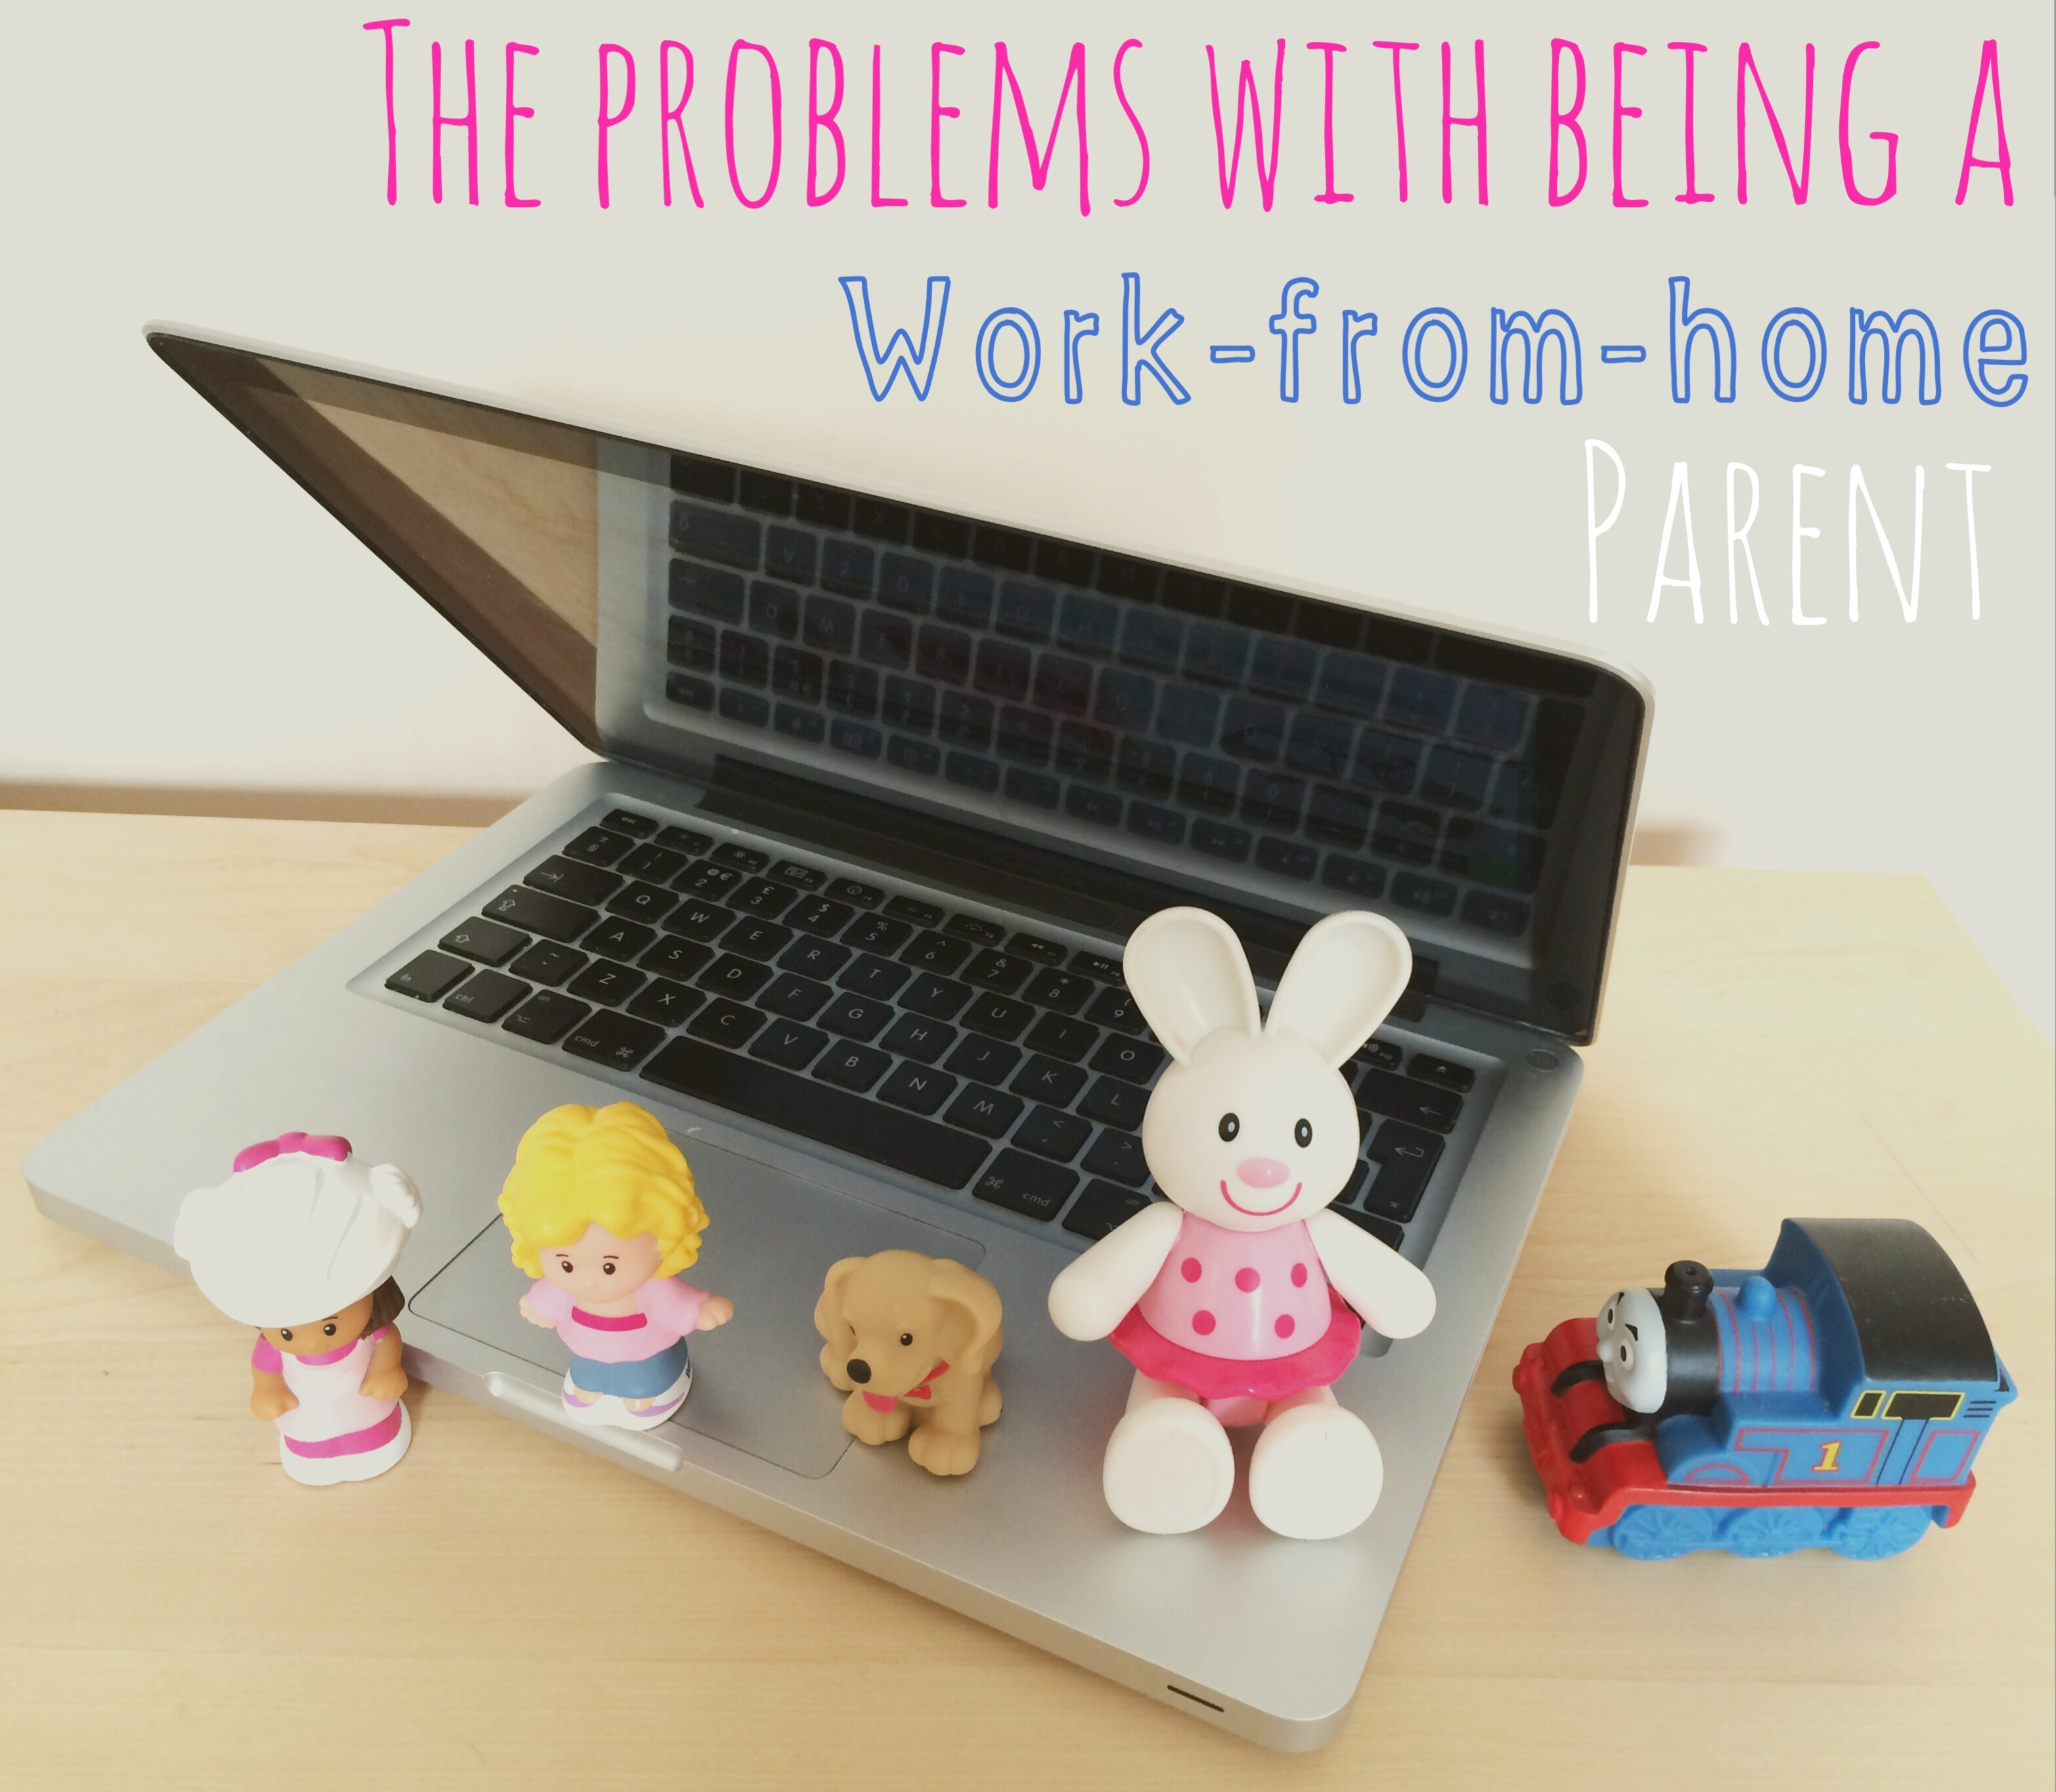 Problems with being a work-from-home parent